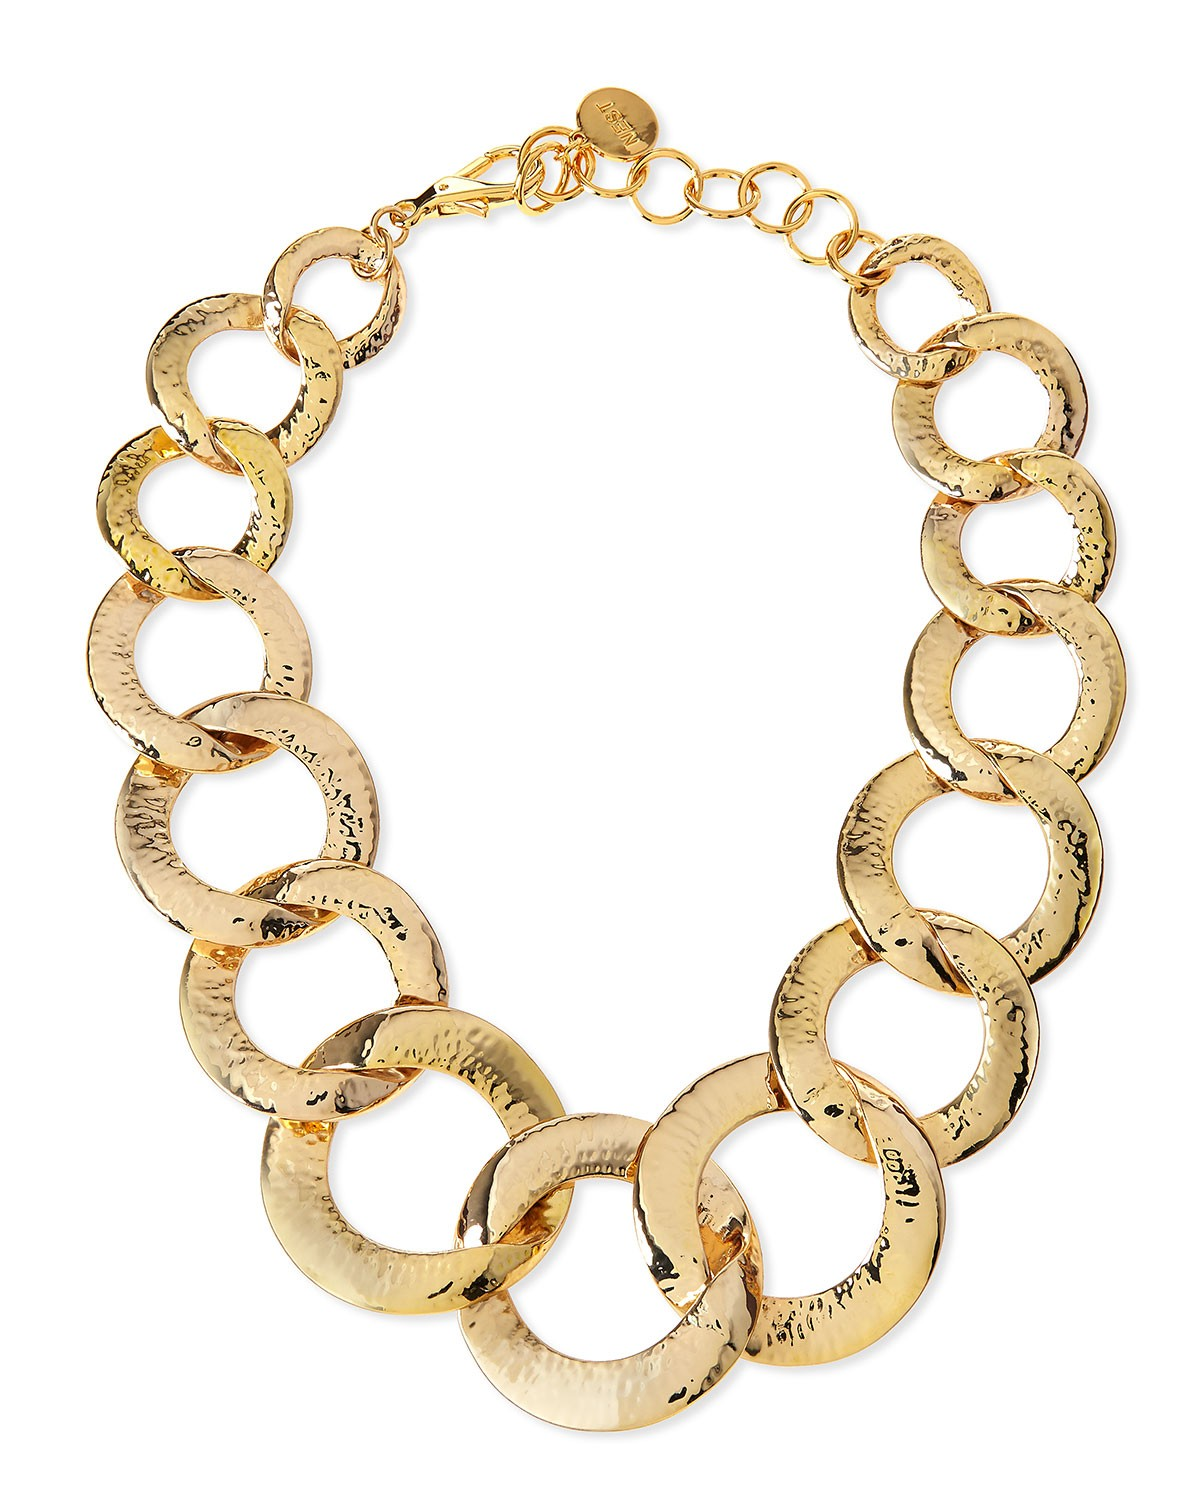 Hammered Gold-Plated Chain Link Necklace - Nest - Gold